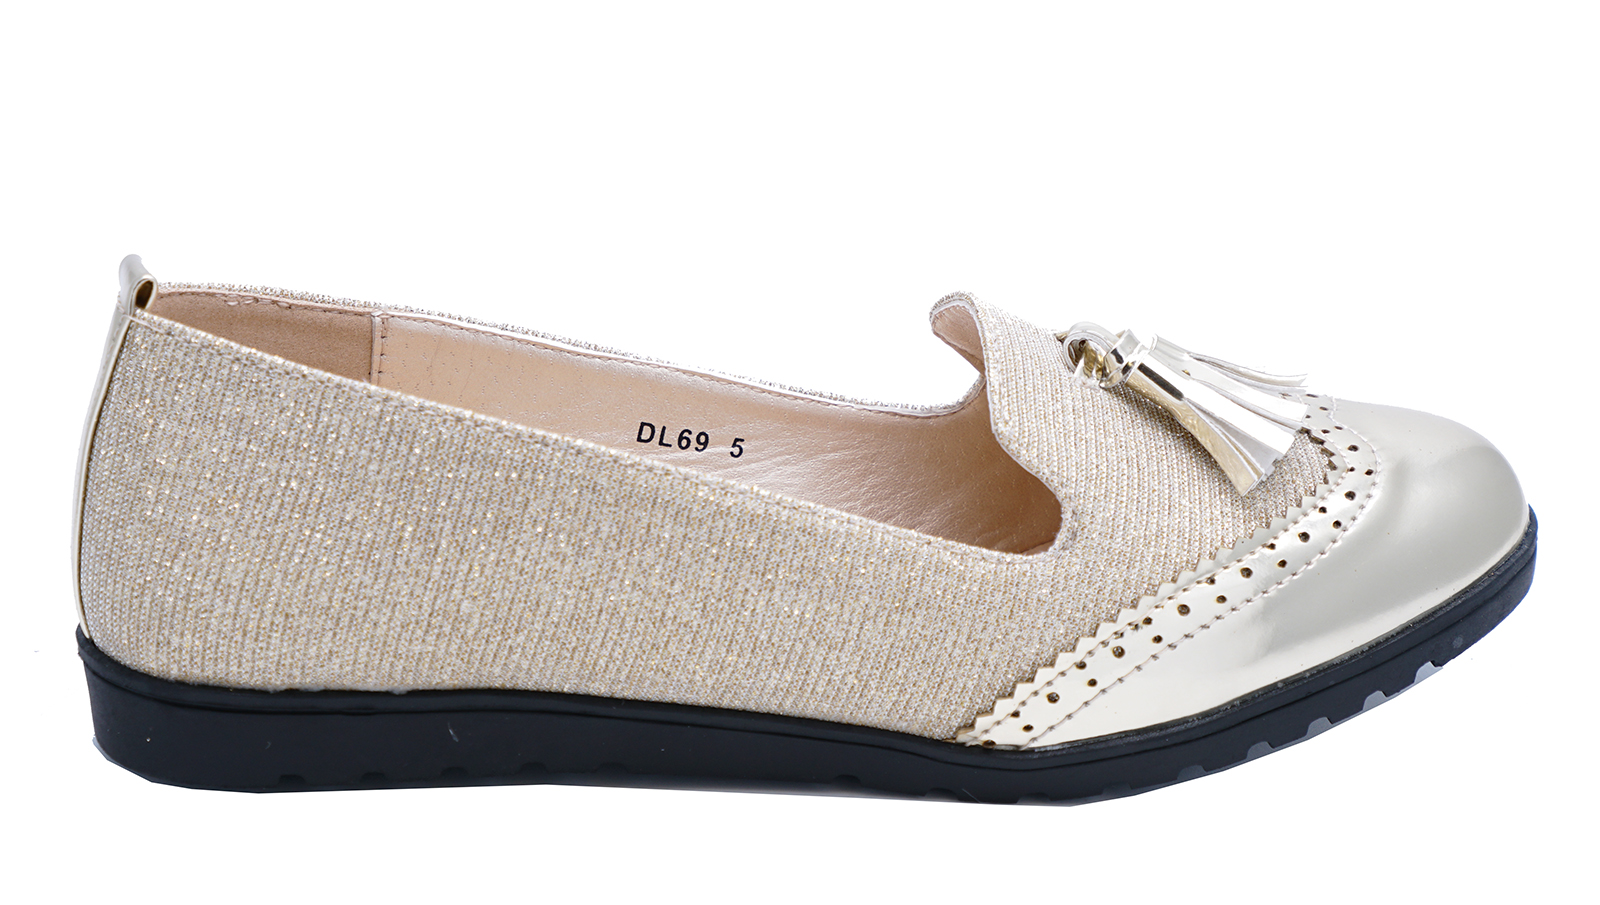 0ff7d253088 Sentinel LADIES SMART GOLD SLIP-ON LOAFERS CASUAL WORK TASSLE COMFY FLAT  SHOES SIZES 3-